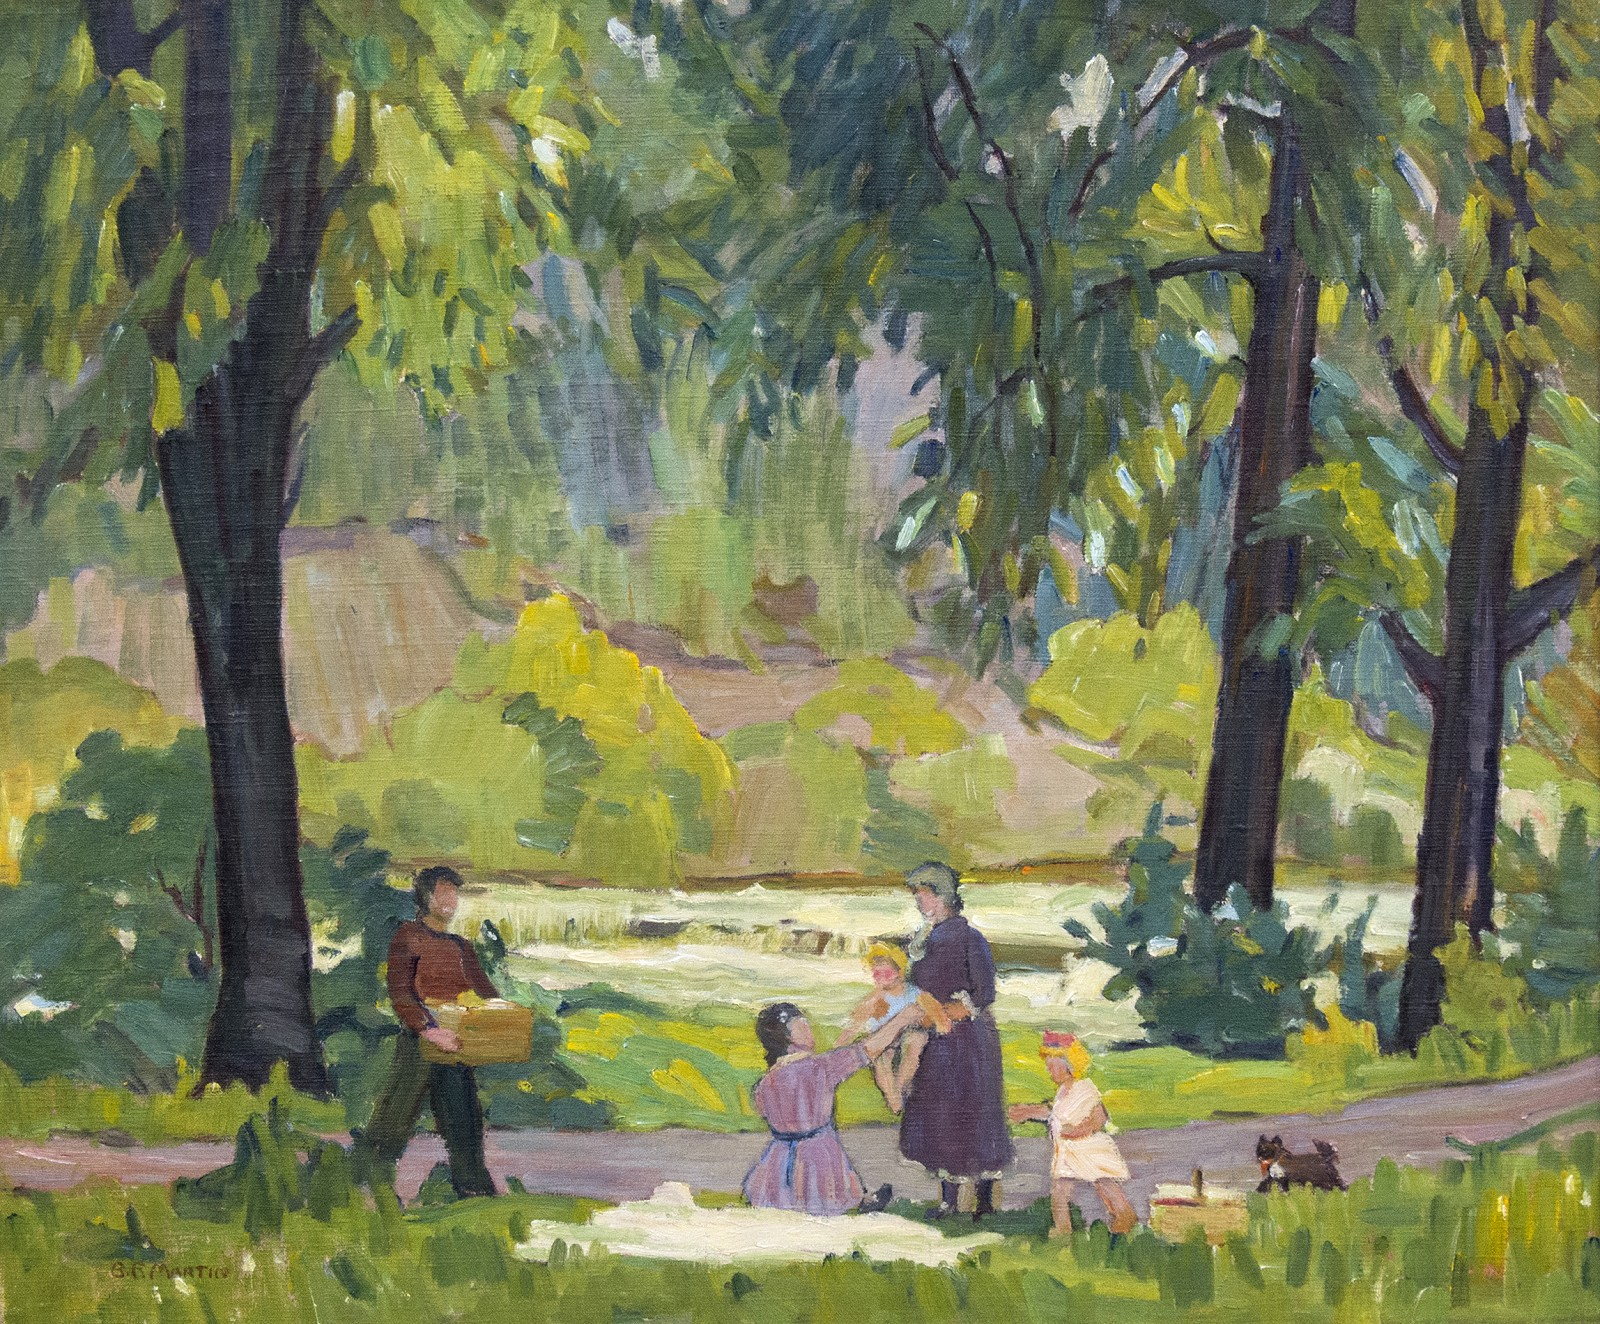 Picnic on the Humber by Bernice Martin » Oeno Gallery on